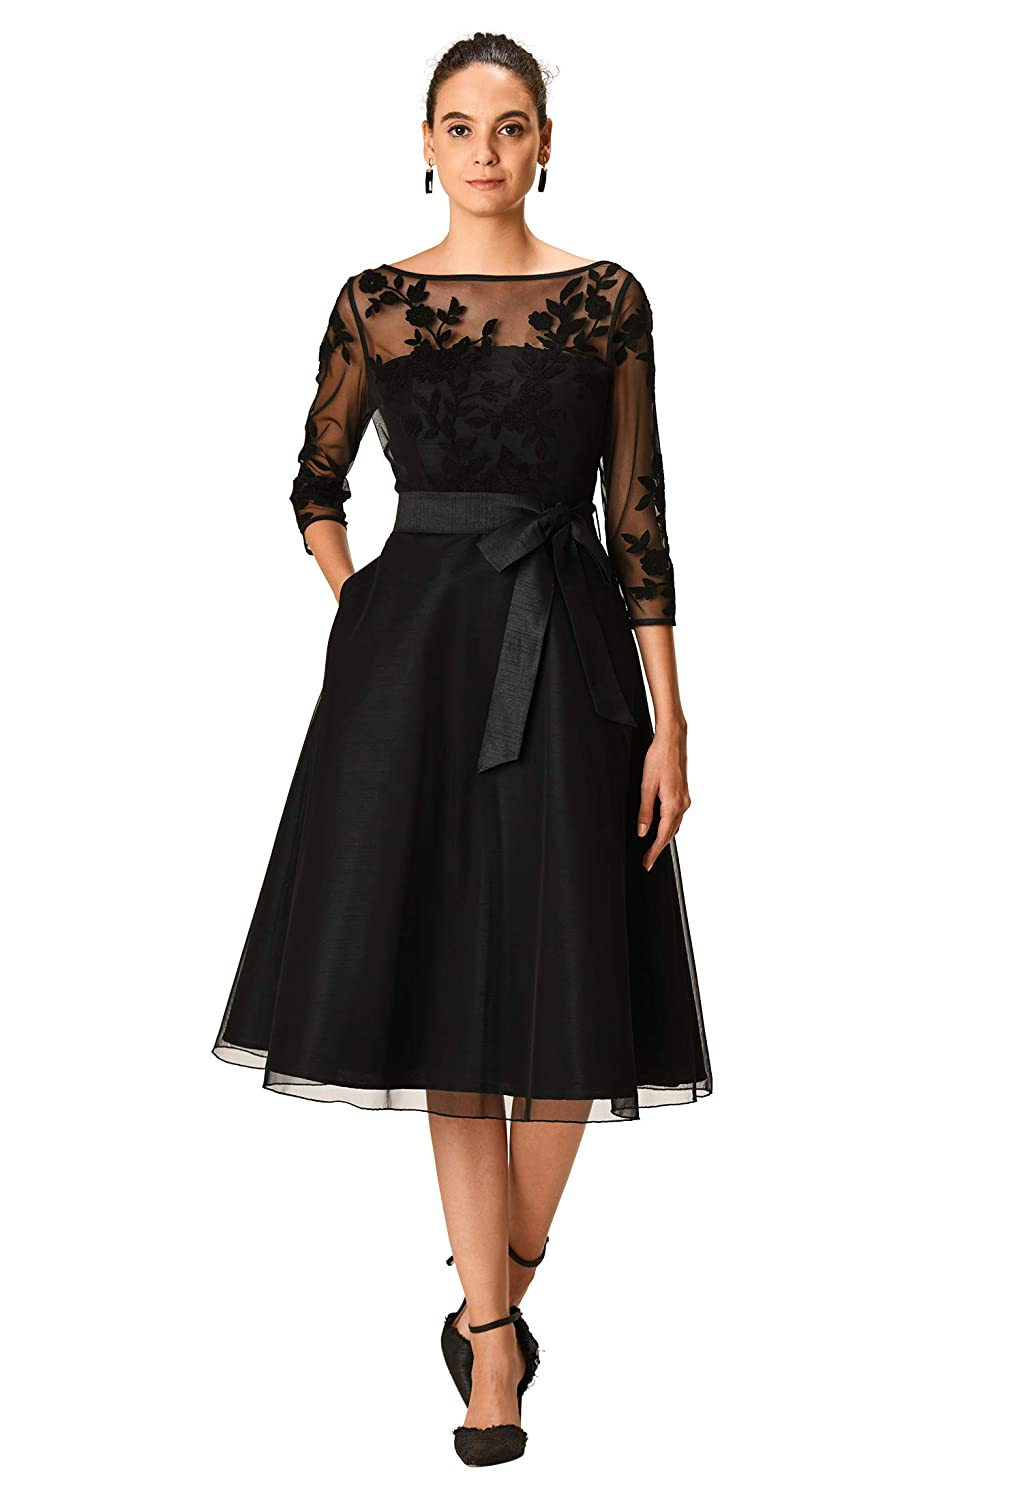 1950s Plus Size Dresses, Swing Dresses eShakti FX Floral Wool Embellished Illusion Tulle and Dupioni Dress - Customizable $94.95 AT vintagedancer.com